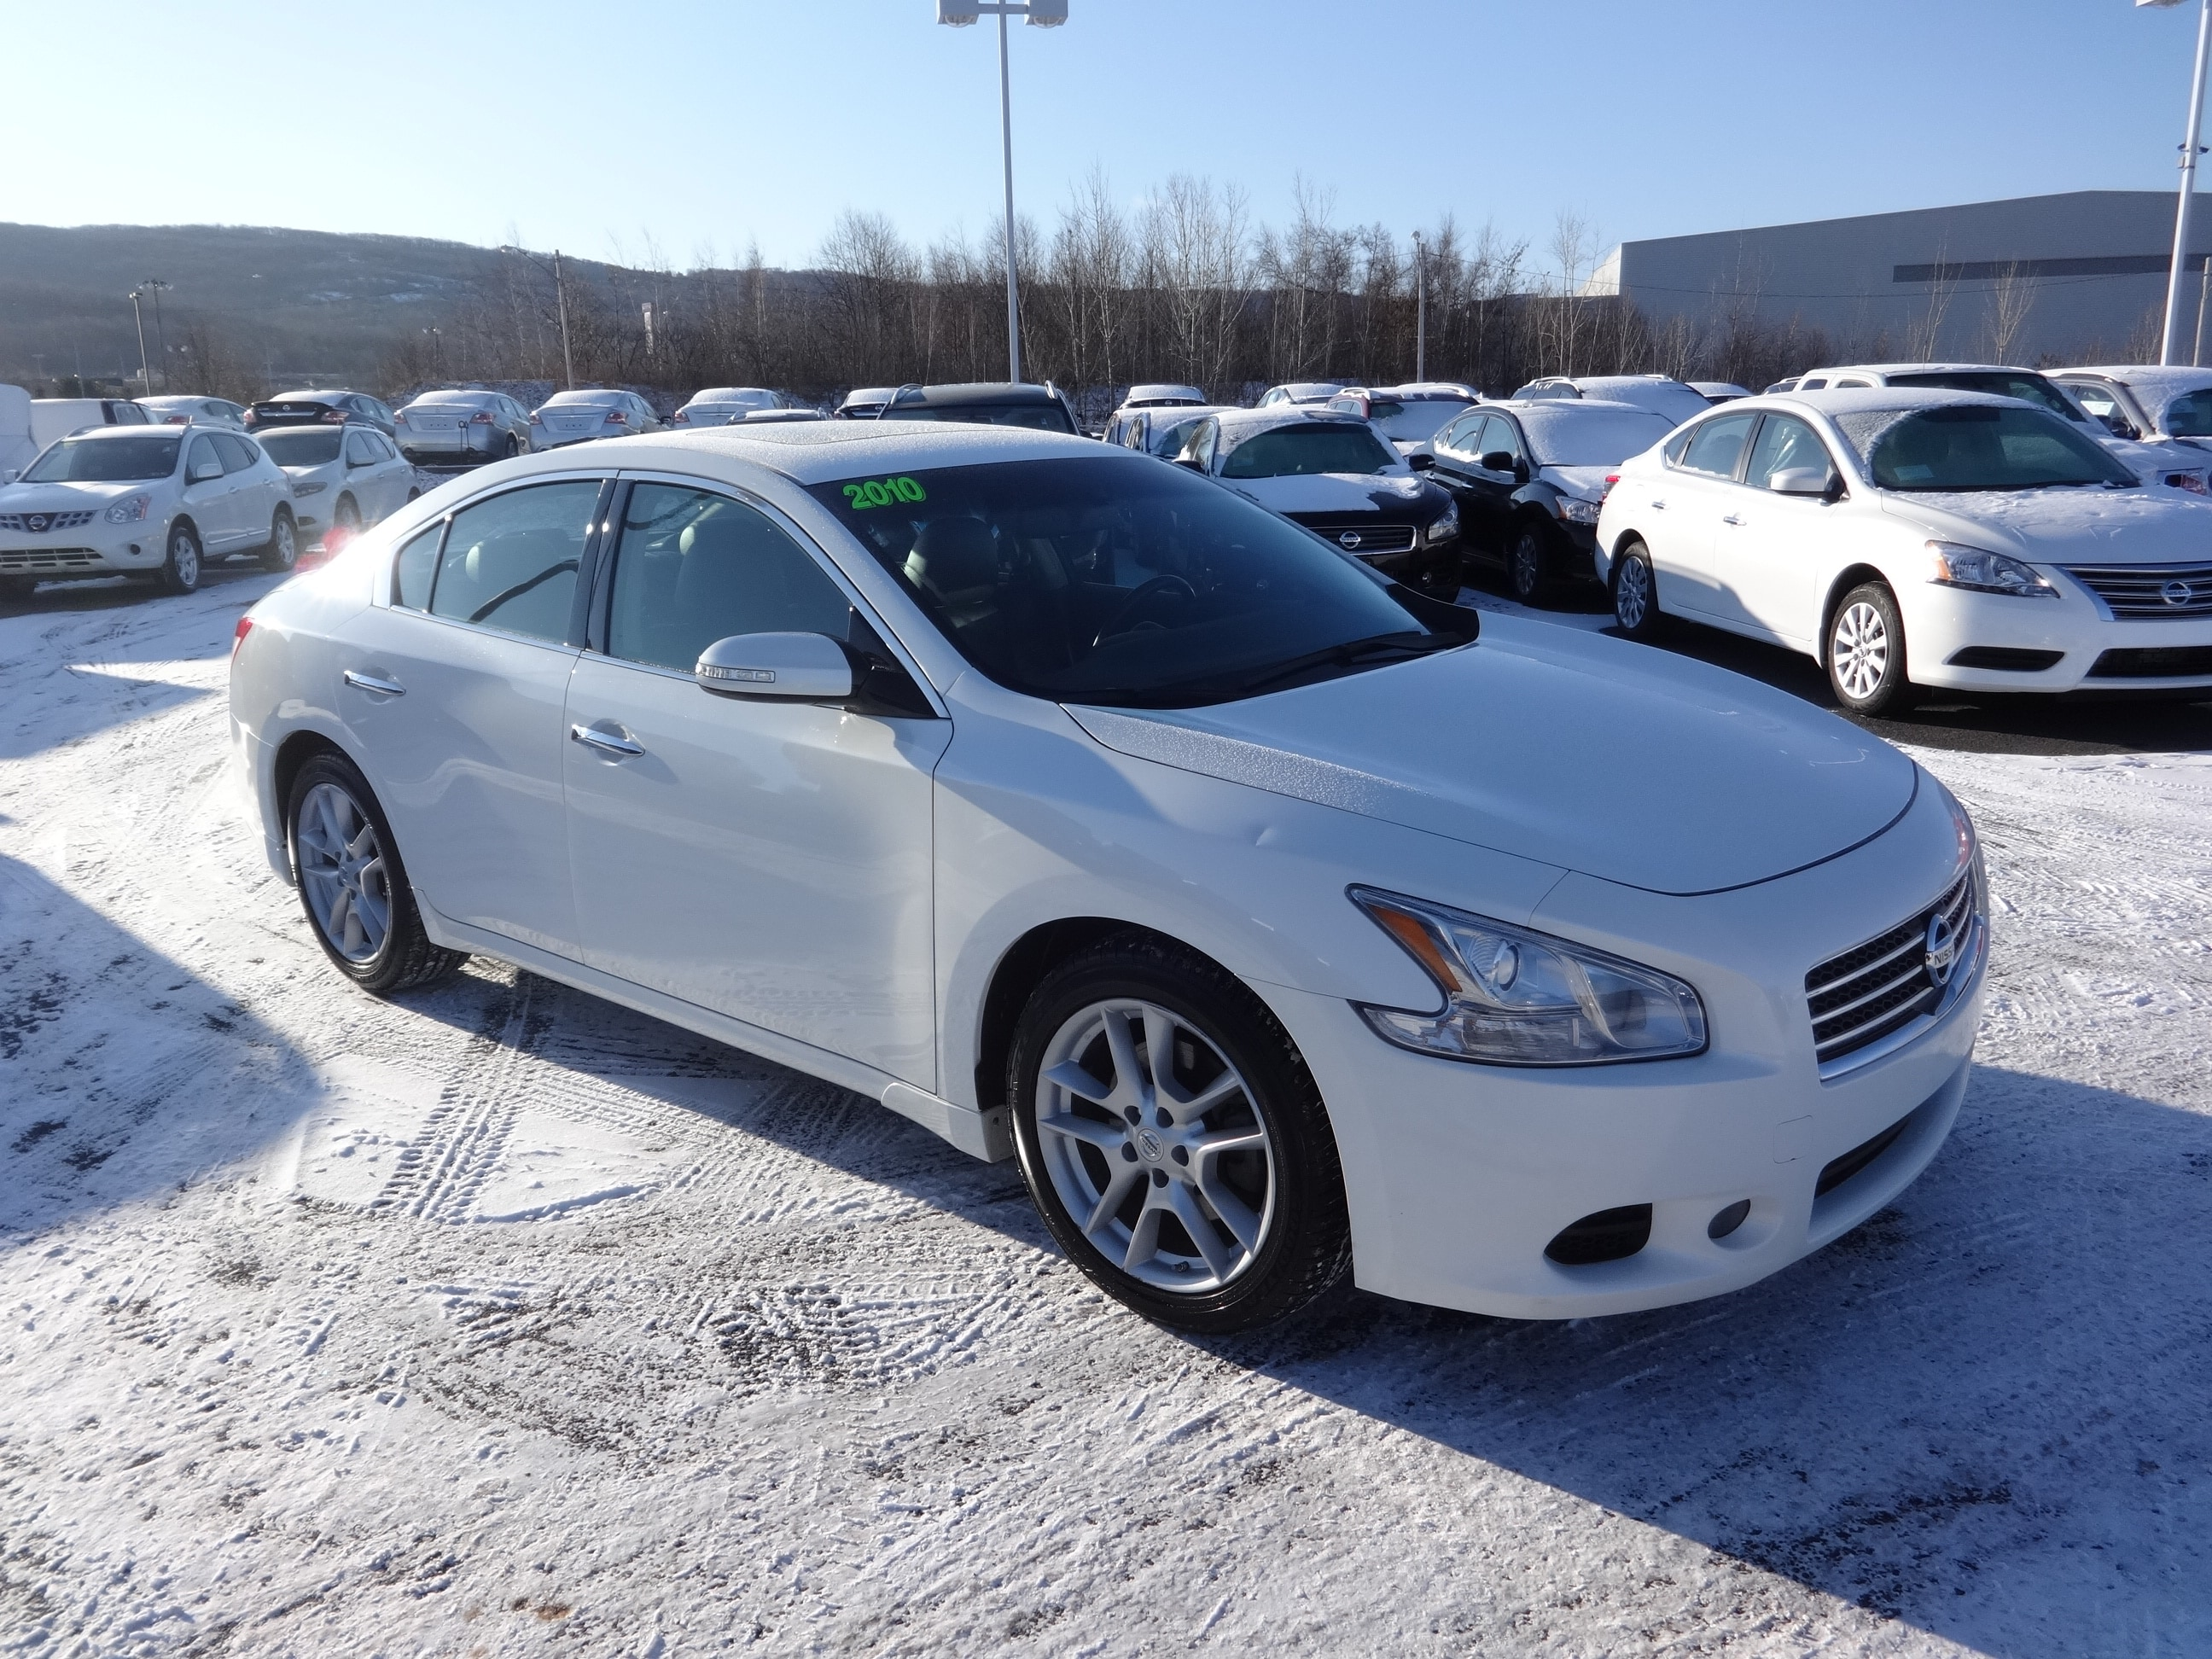 used 2010 nissan maxima for sale wilkes barre pa. Black Bedroom Furniture Sets. Home Design Ideas